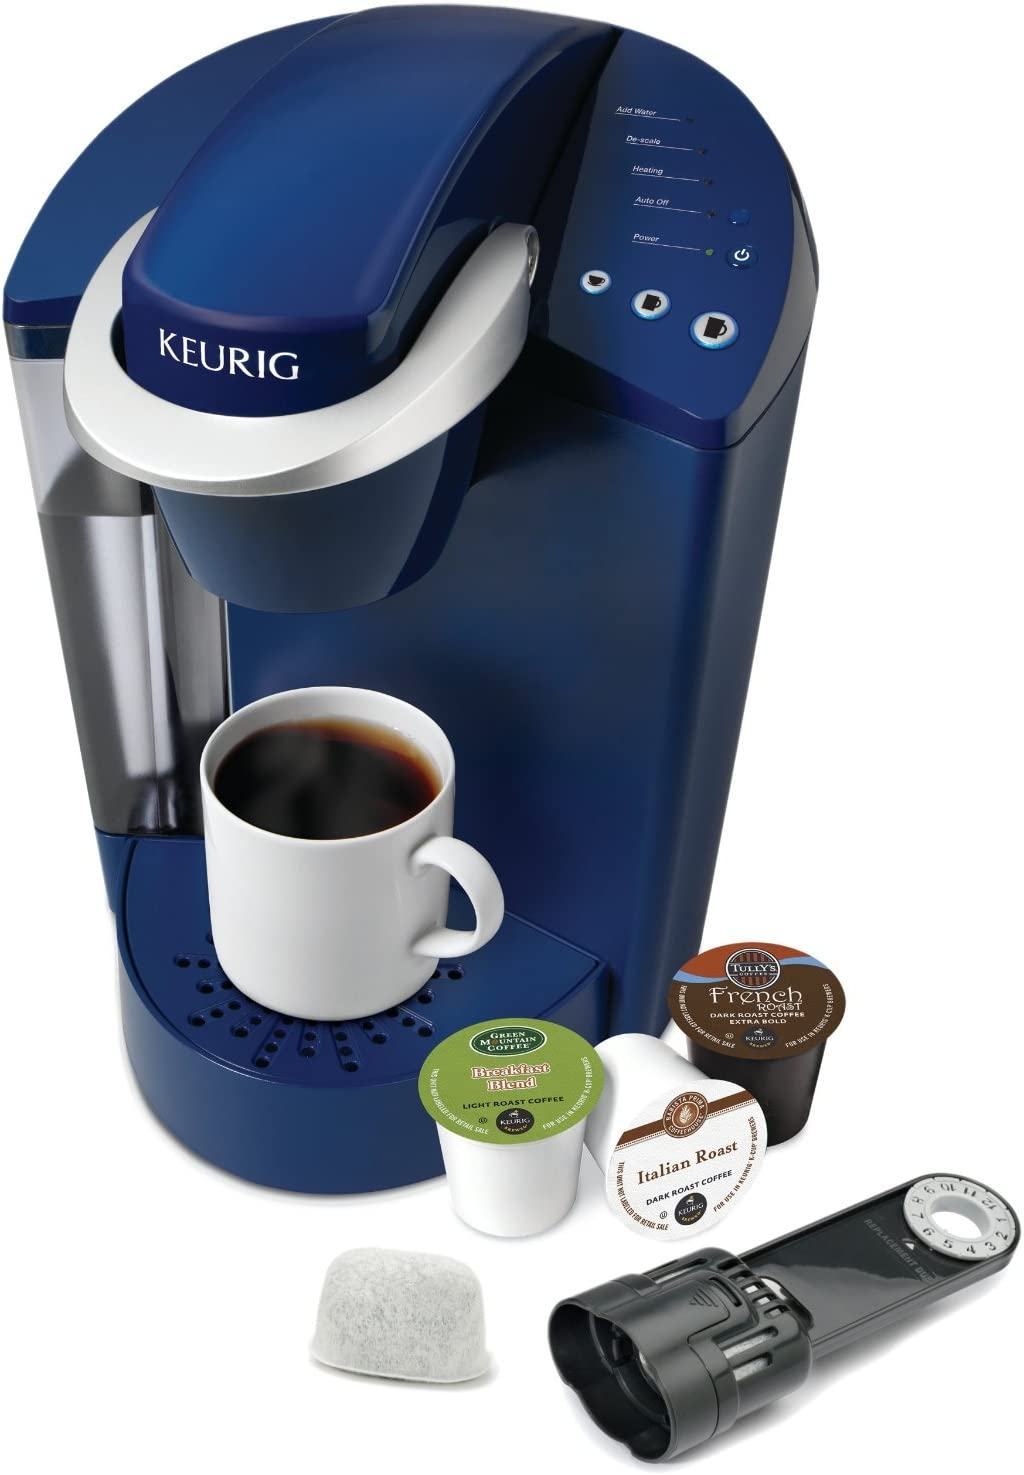 Amazon.com: Keurig K45 Elite Cafetera, Azul patriot: Kitchen ...